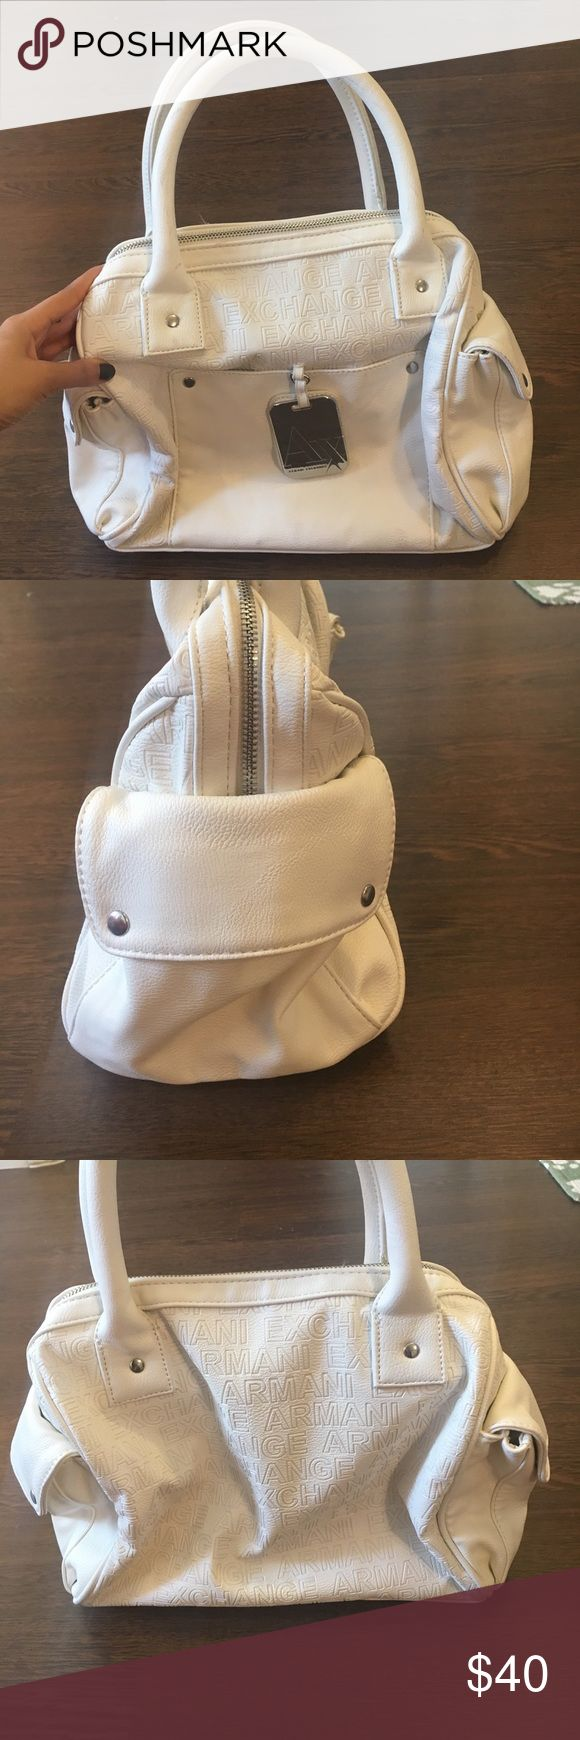 Armani Exchange White Purse Brand new never used Armani Exchange A/X white purse. Inside is perfect no stains. Outside has damage as pictured from sitting in a box. AS IS. A/X Armani Exchange Bags